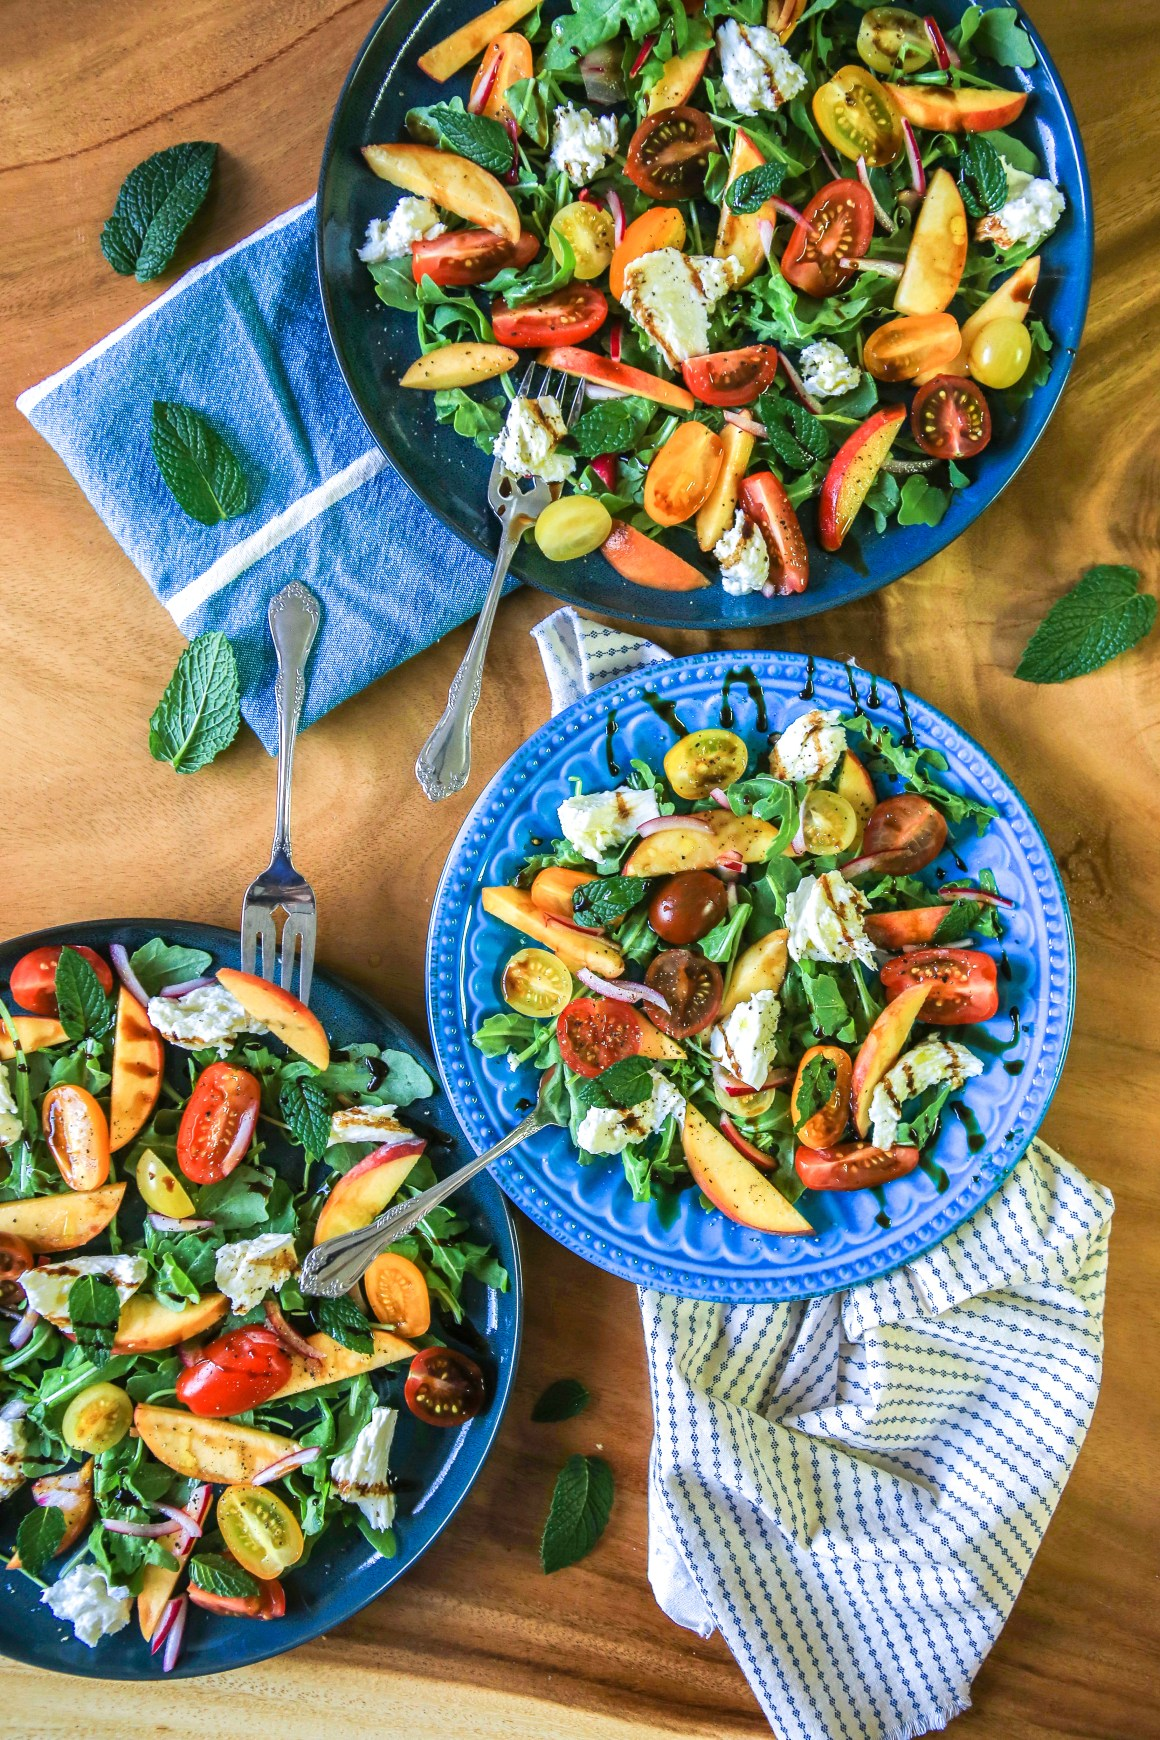 Fresh peach salad with arugula, mint, heirloom tomatoes and buffalo mozzarella